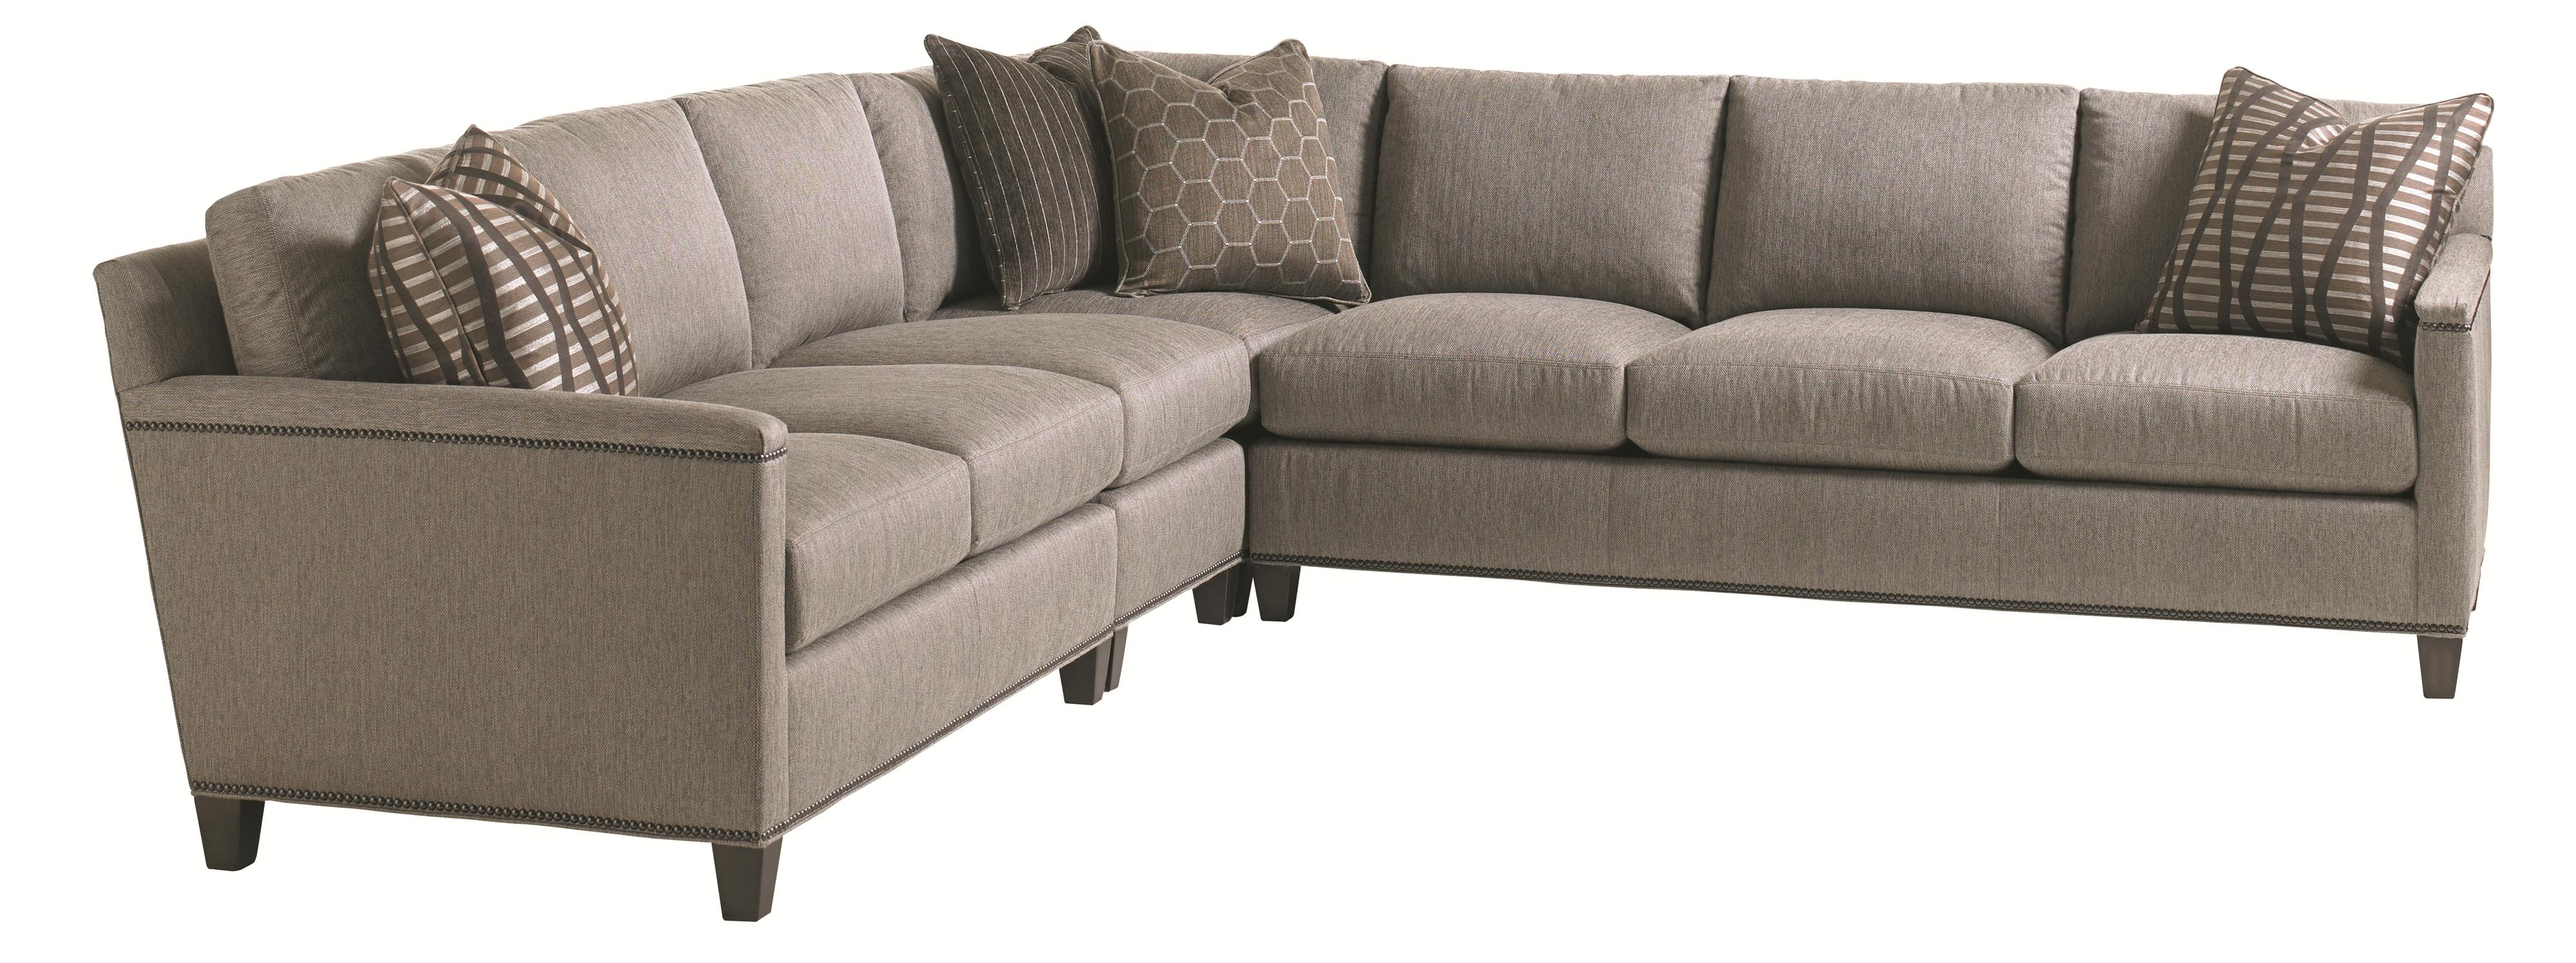 Carrera 4 Pc Sectional Sofa by Lexington at Jacksonville Furniture Mart